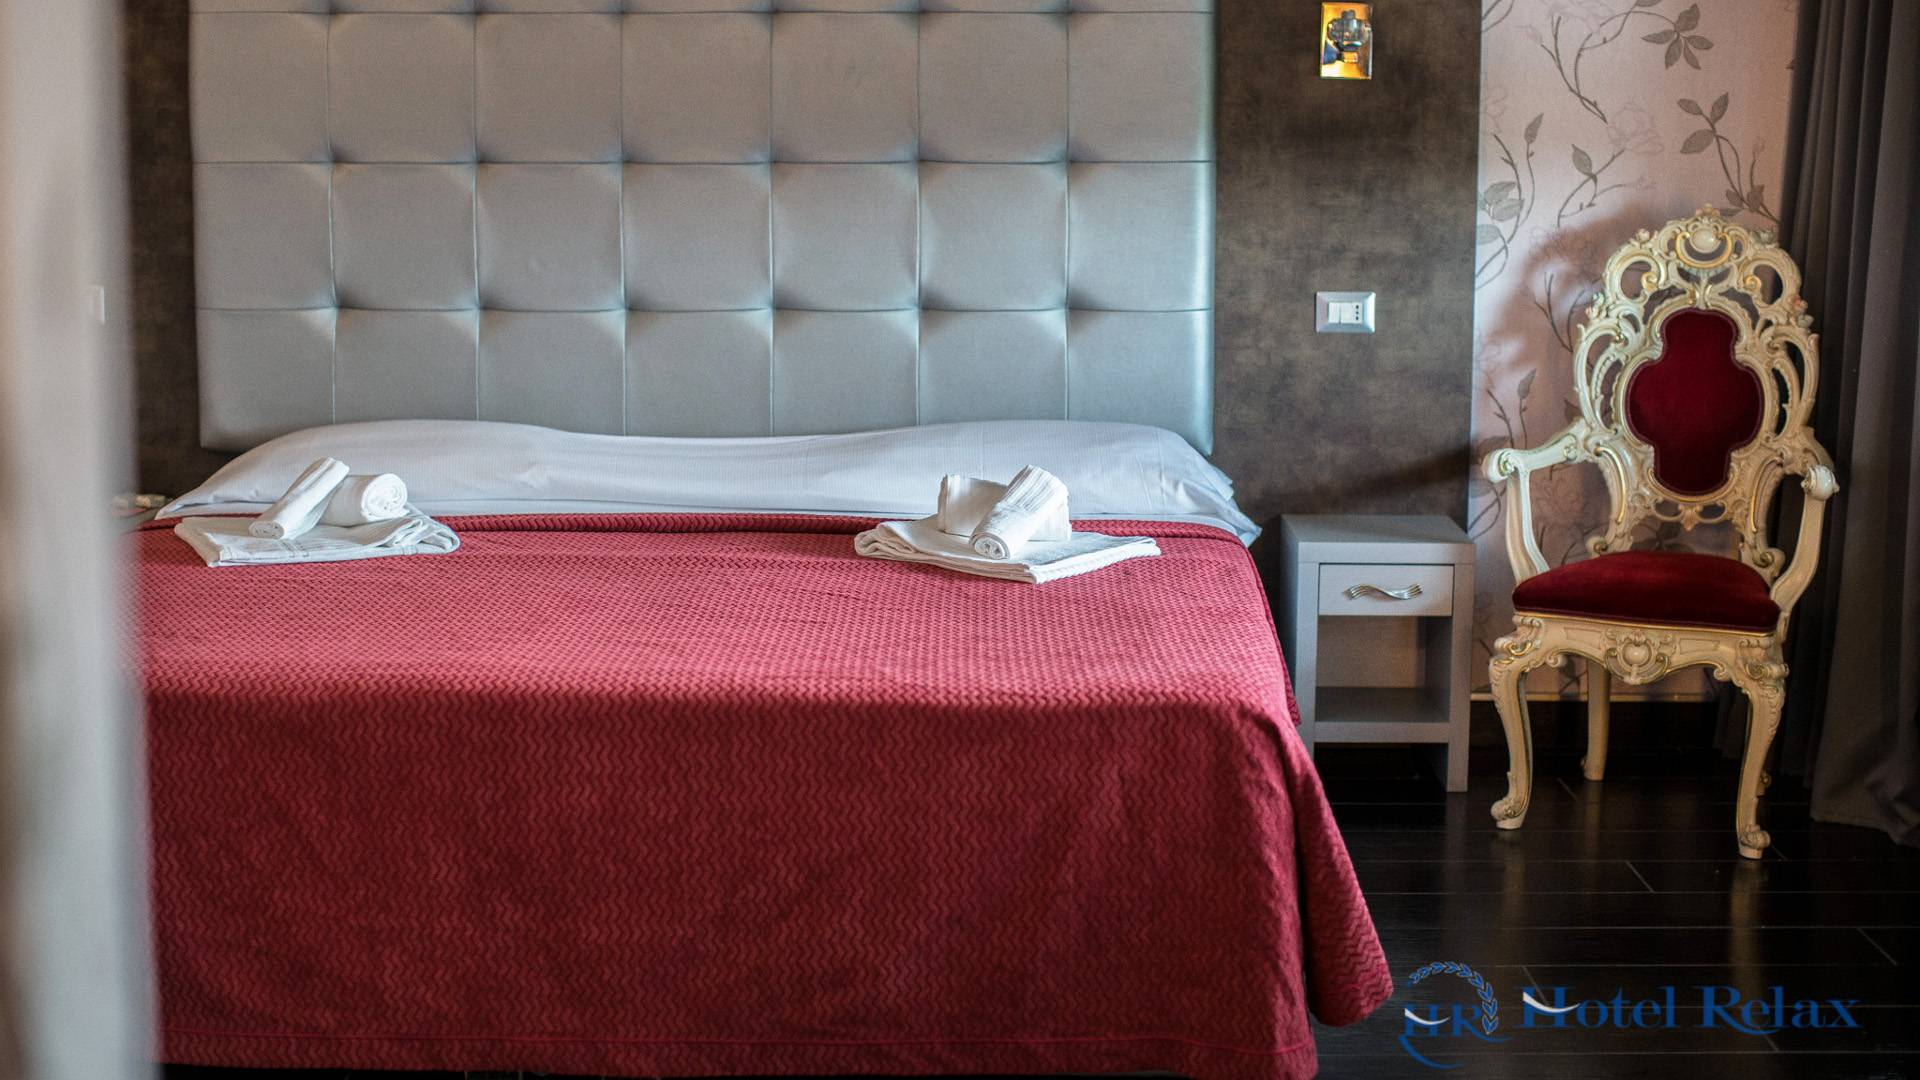 hotel-relax-roma-camere-9324